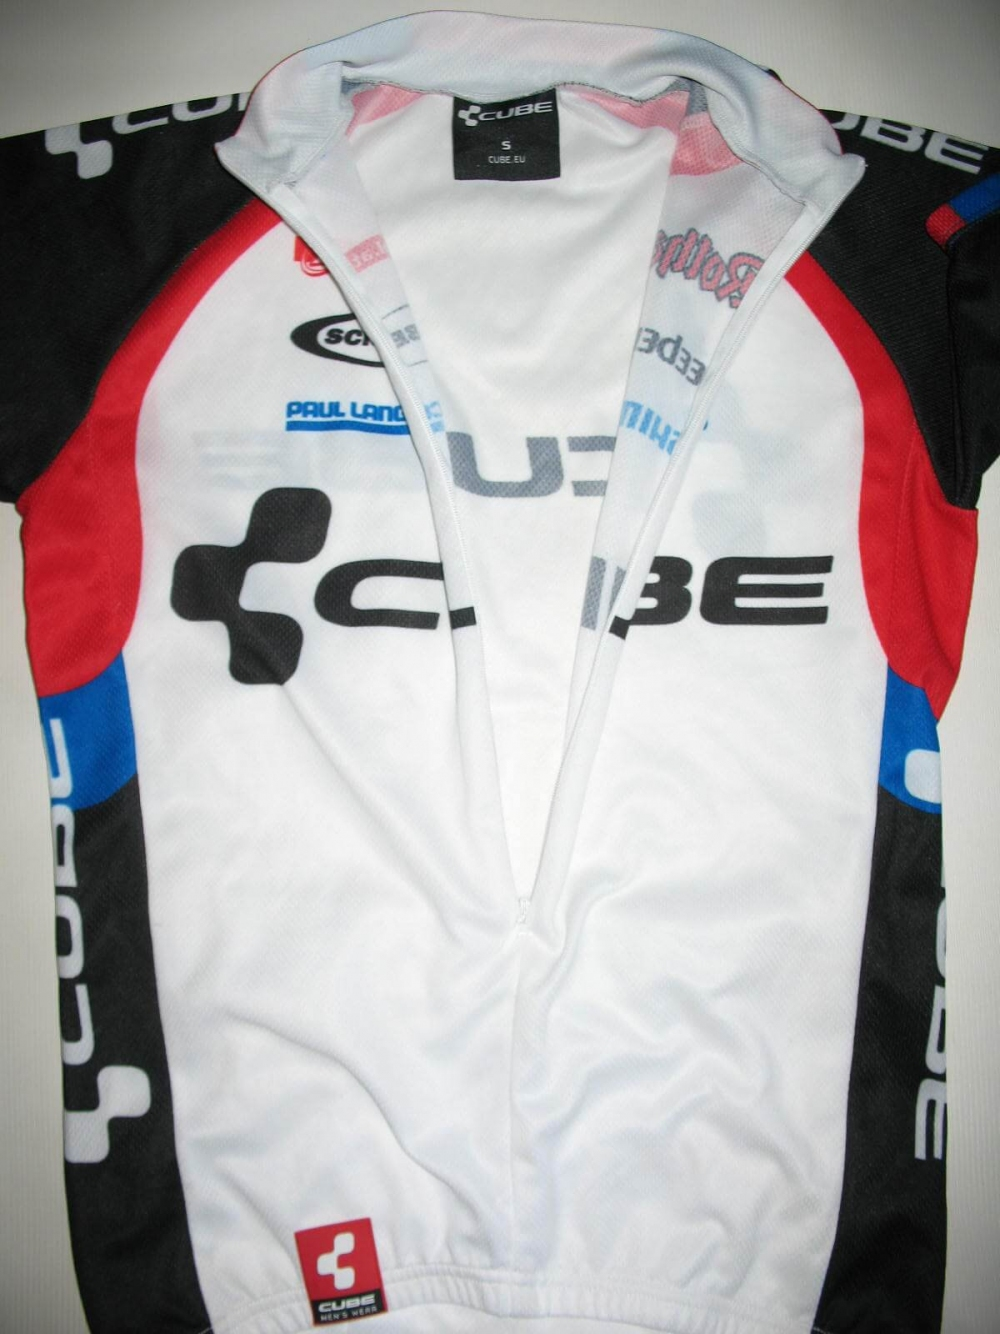 Веломайка CUBE cycling jersey (размер S/XS) - 2